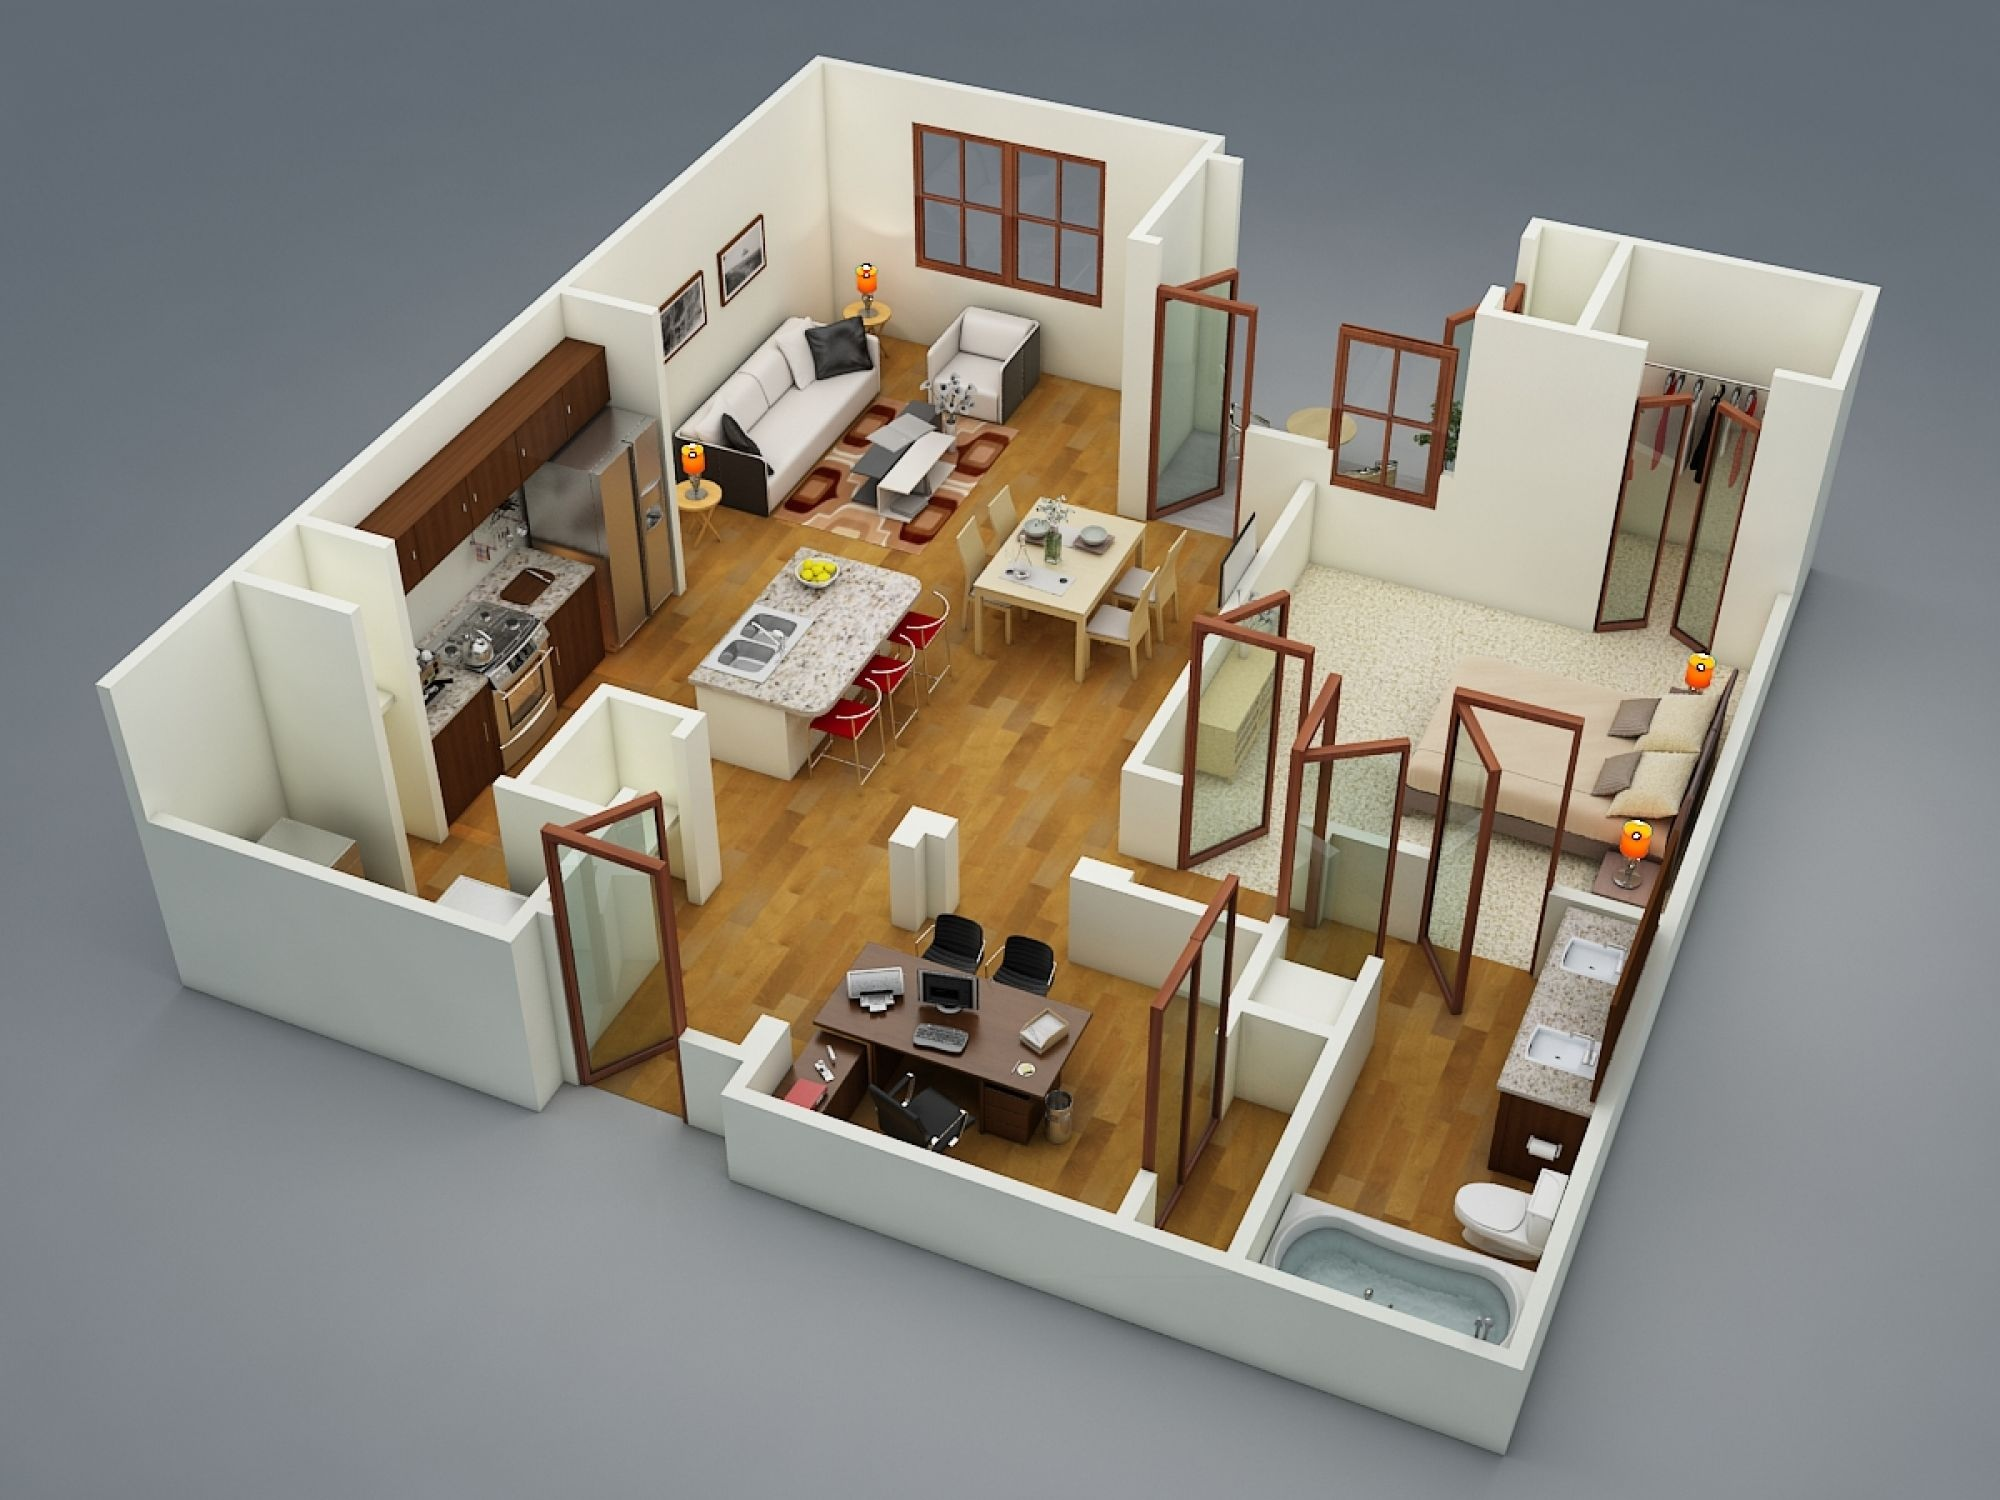 House Plans 1 bedroom apartment/house plans